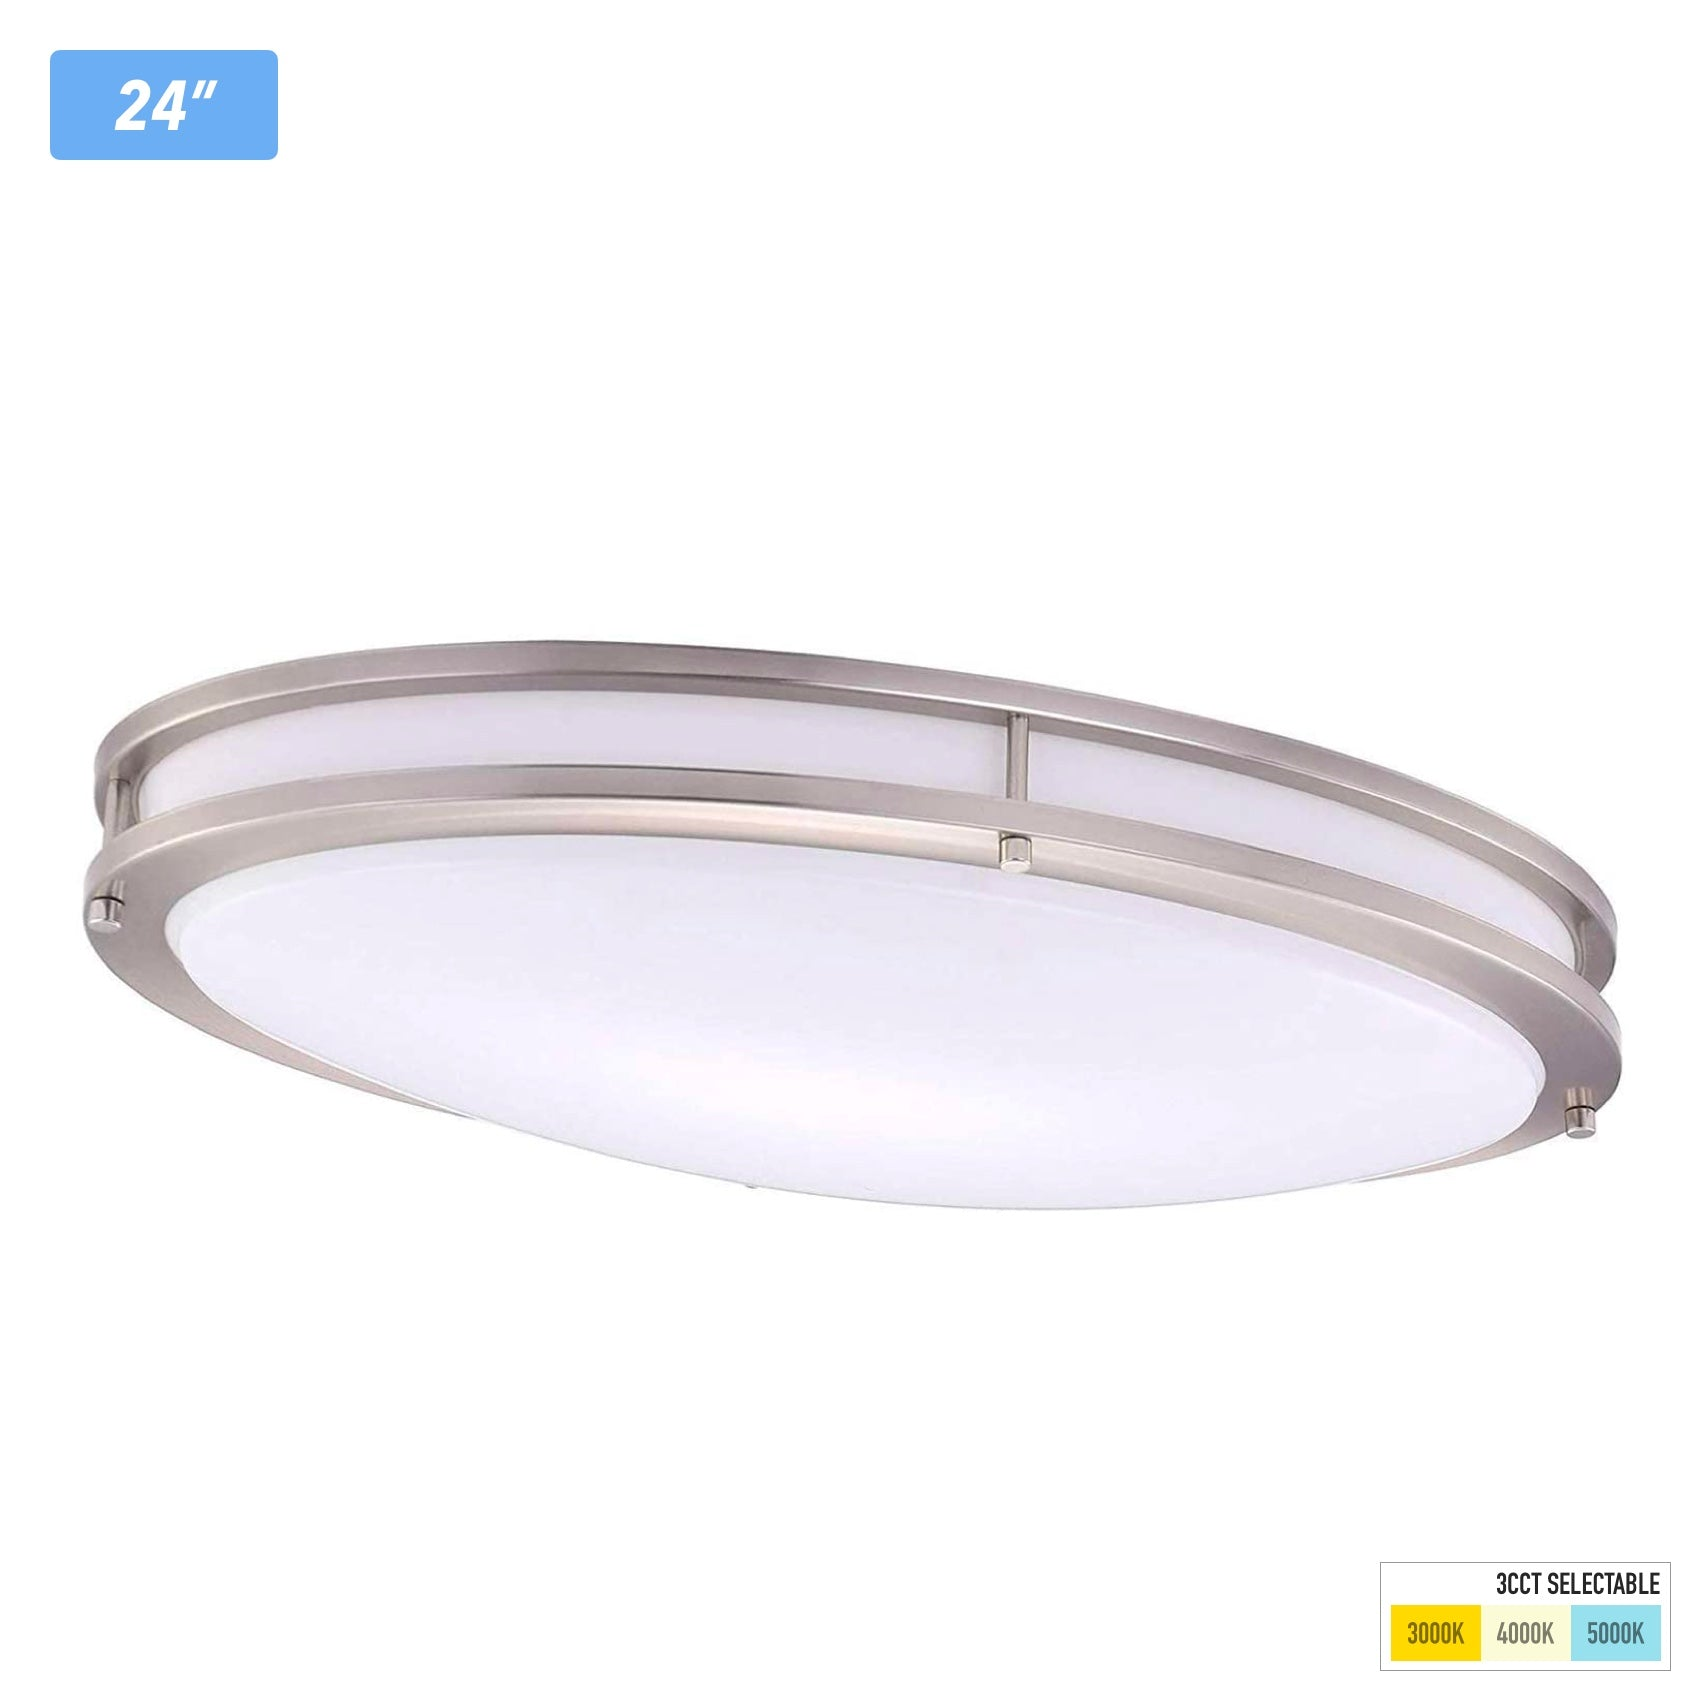 3 Color LED Flush Mount Ceiling Light,24 Inch Oval,3000K/ 4000K/ 5000K Selectable,30W Brushed Nickel for Living Room, Bedroom